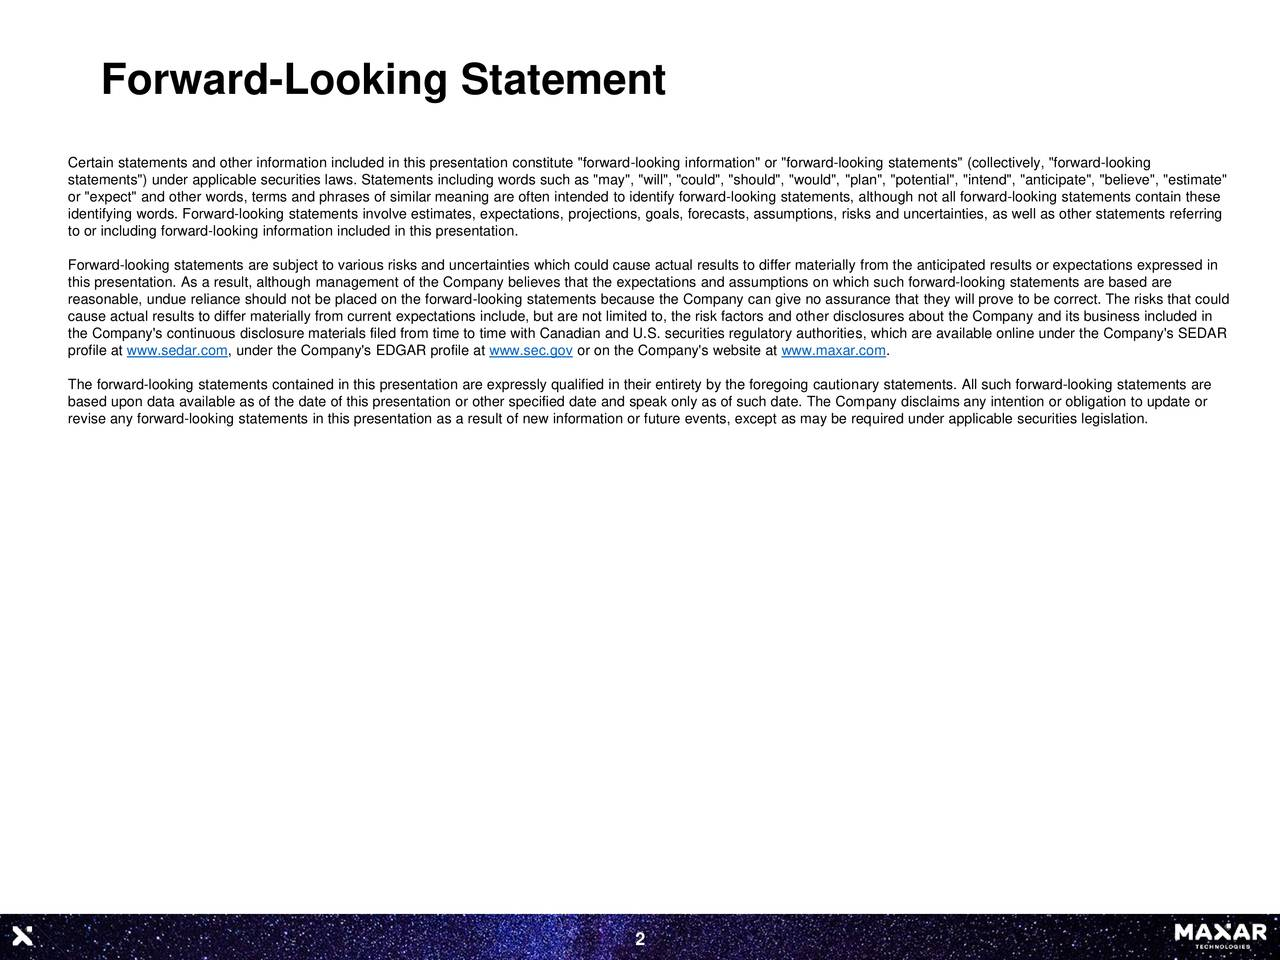 """Certain statements and other information included in this presentation constitute """"forward-looking information"""" or """"forward-looking statements"""" (collectively, """"forward-looking statements"""") under applicable securities laws. Statements including words such as """"may"""", """"will"""", """"could"""", """"should"""", """"would"""", """"plan"""", """"potential"""", """"intend"""", """"anticipate"""", """"believe"""", """"estimate"""" or """"expect"""" and other words, terms and phrases of similar meaning are often intended to identify forward-looking statements, although not all forward-looking statements contain these identifying words. Forward-looking statements involve estimates, expectations, projections, goals, forecasts, assumptions, risks and uncertainties, as well as other statements referring to or including forward-looking information included in this presentation. Forward-looking statements are subject to various risks and uncertainties which could cause actual results to differ materially from the anticipated results or expectations expressed in this presentation. As a result, although management of the Company believes that the expectations and assumptions on which such forward-looking statements are based are reasonable, undue reliance should not be placed on the forward-looking statements because the Company can give no assurance that they will prove to be correct. The risks that could cause actual results to differ materially from current expectations include, but are not limited to, the risk factors and other disclosures about the Company and its business included in the Company's continuous disclosure materials filed from time to time with Canadian and U.S. securities regulatory authorities, which are available online under the Company's SEDAR profile at www.sedar.com, under the Company's EDGAR profile at www.sec.gov or on the Company's website at www.maxar.com. The forward-looking statements contained in this presentation are expressly qualified in their entirety by the foregoing cautionary statements. All such forward-lo"""